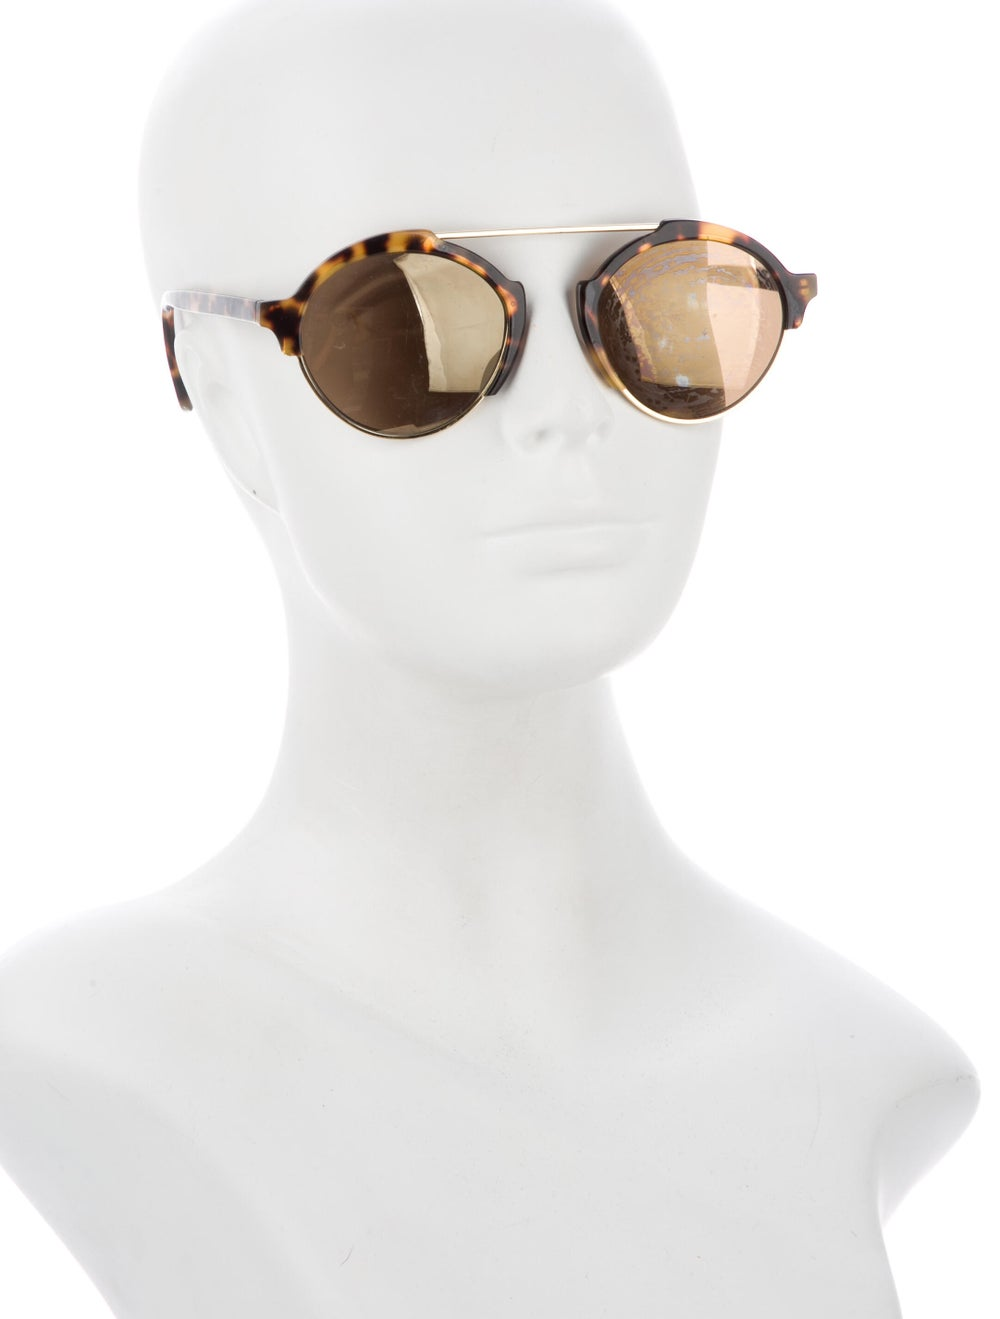 Warby Parker Round Mirrored Sunglasses Gold - image 4